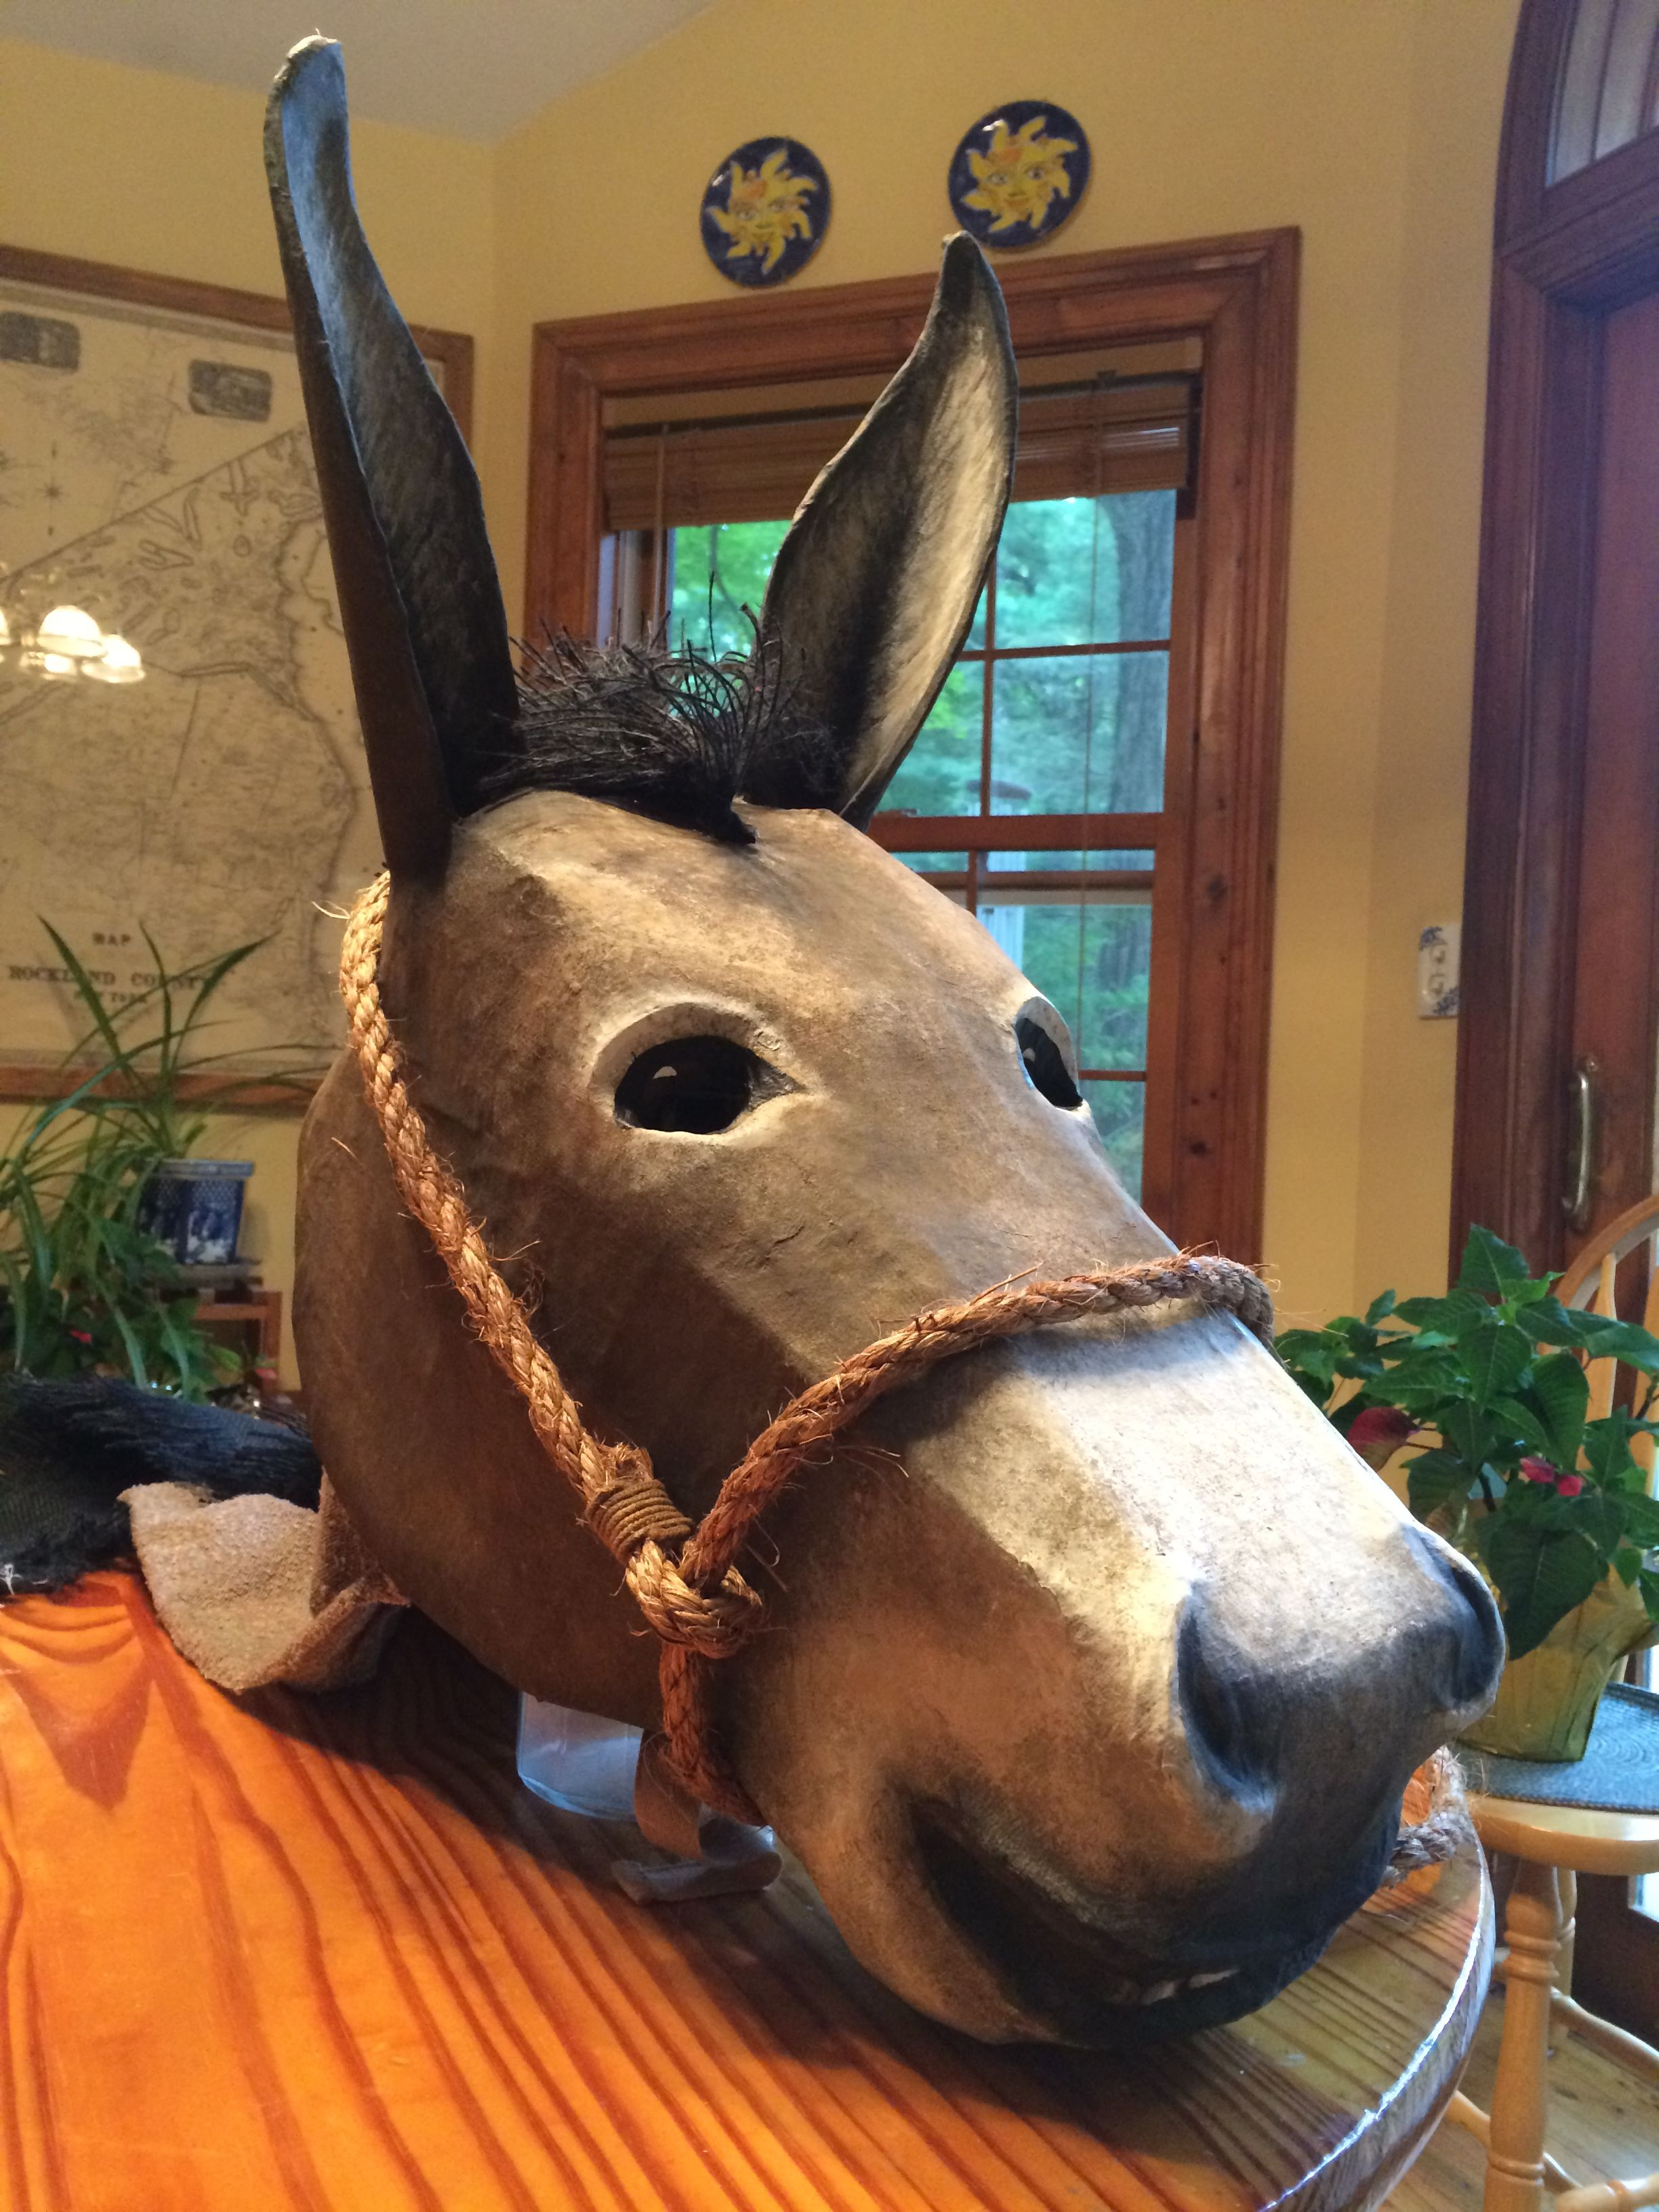 This is the Donkey head/mask that I created using cardboard and ...